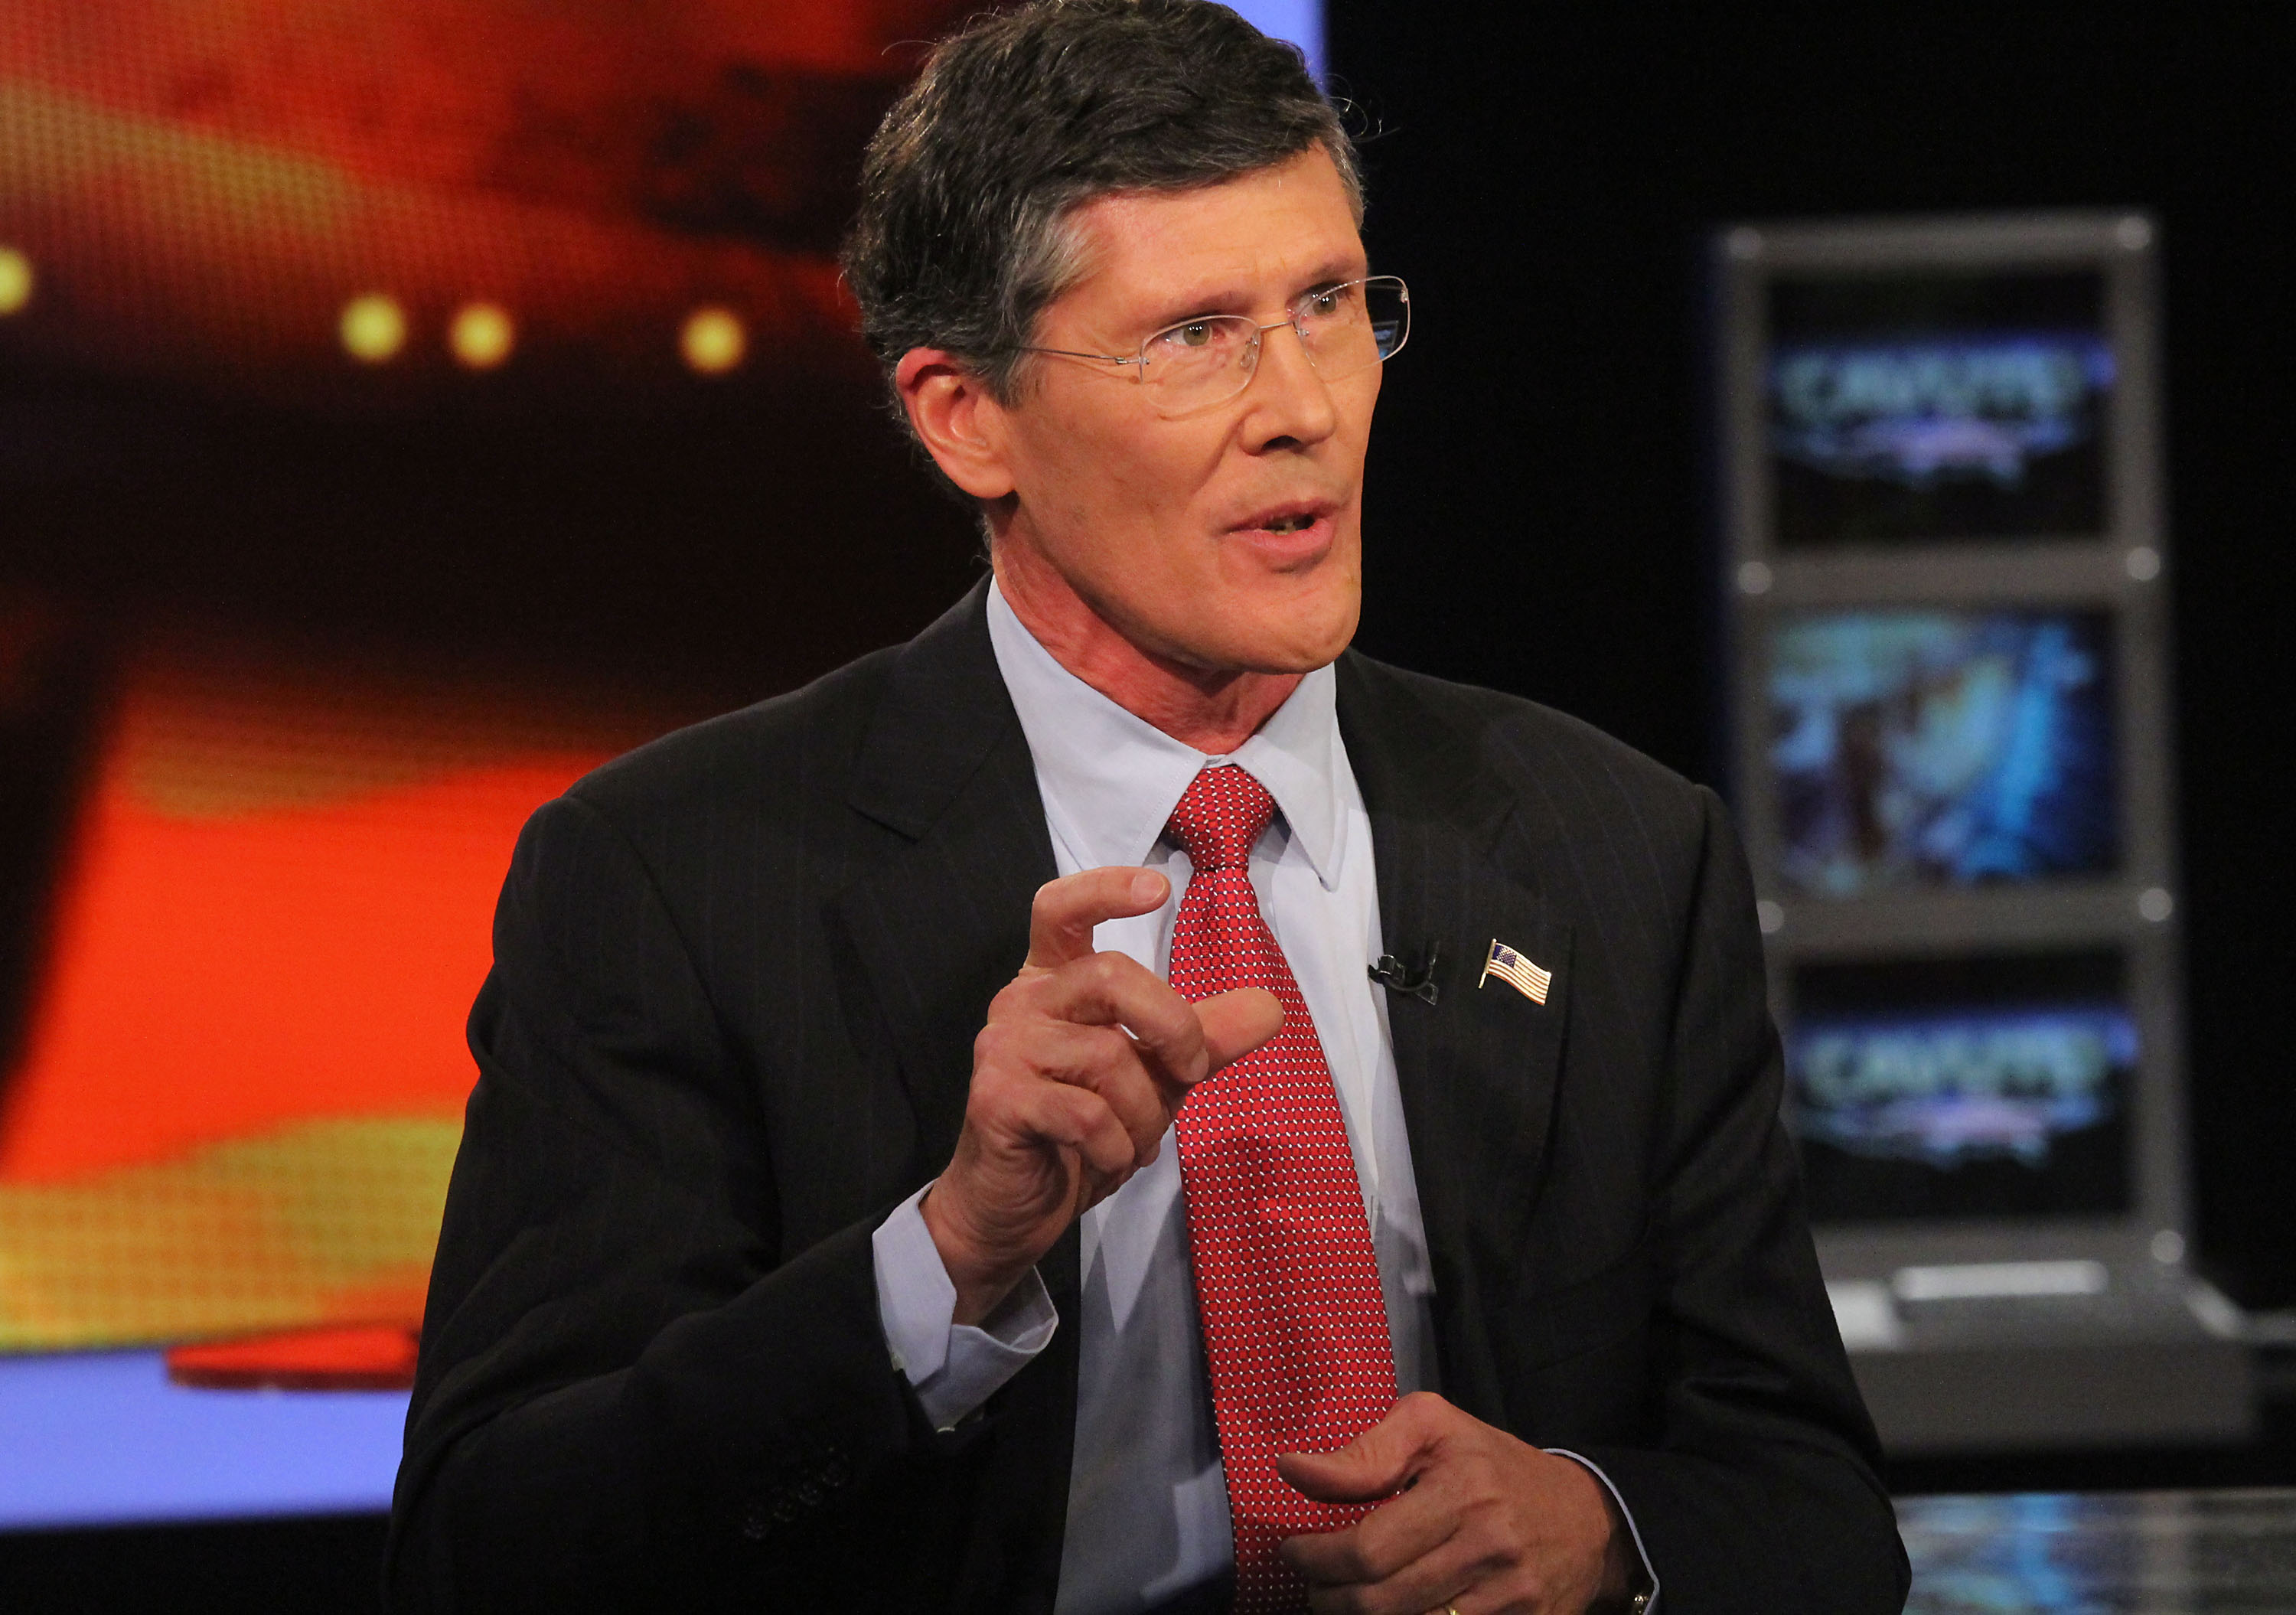 FOX Business Network's Neil Cavuto Interviews Former Merrill Lynch Chief Executive And Current Head Of CIT Group John Thain